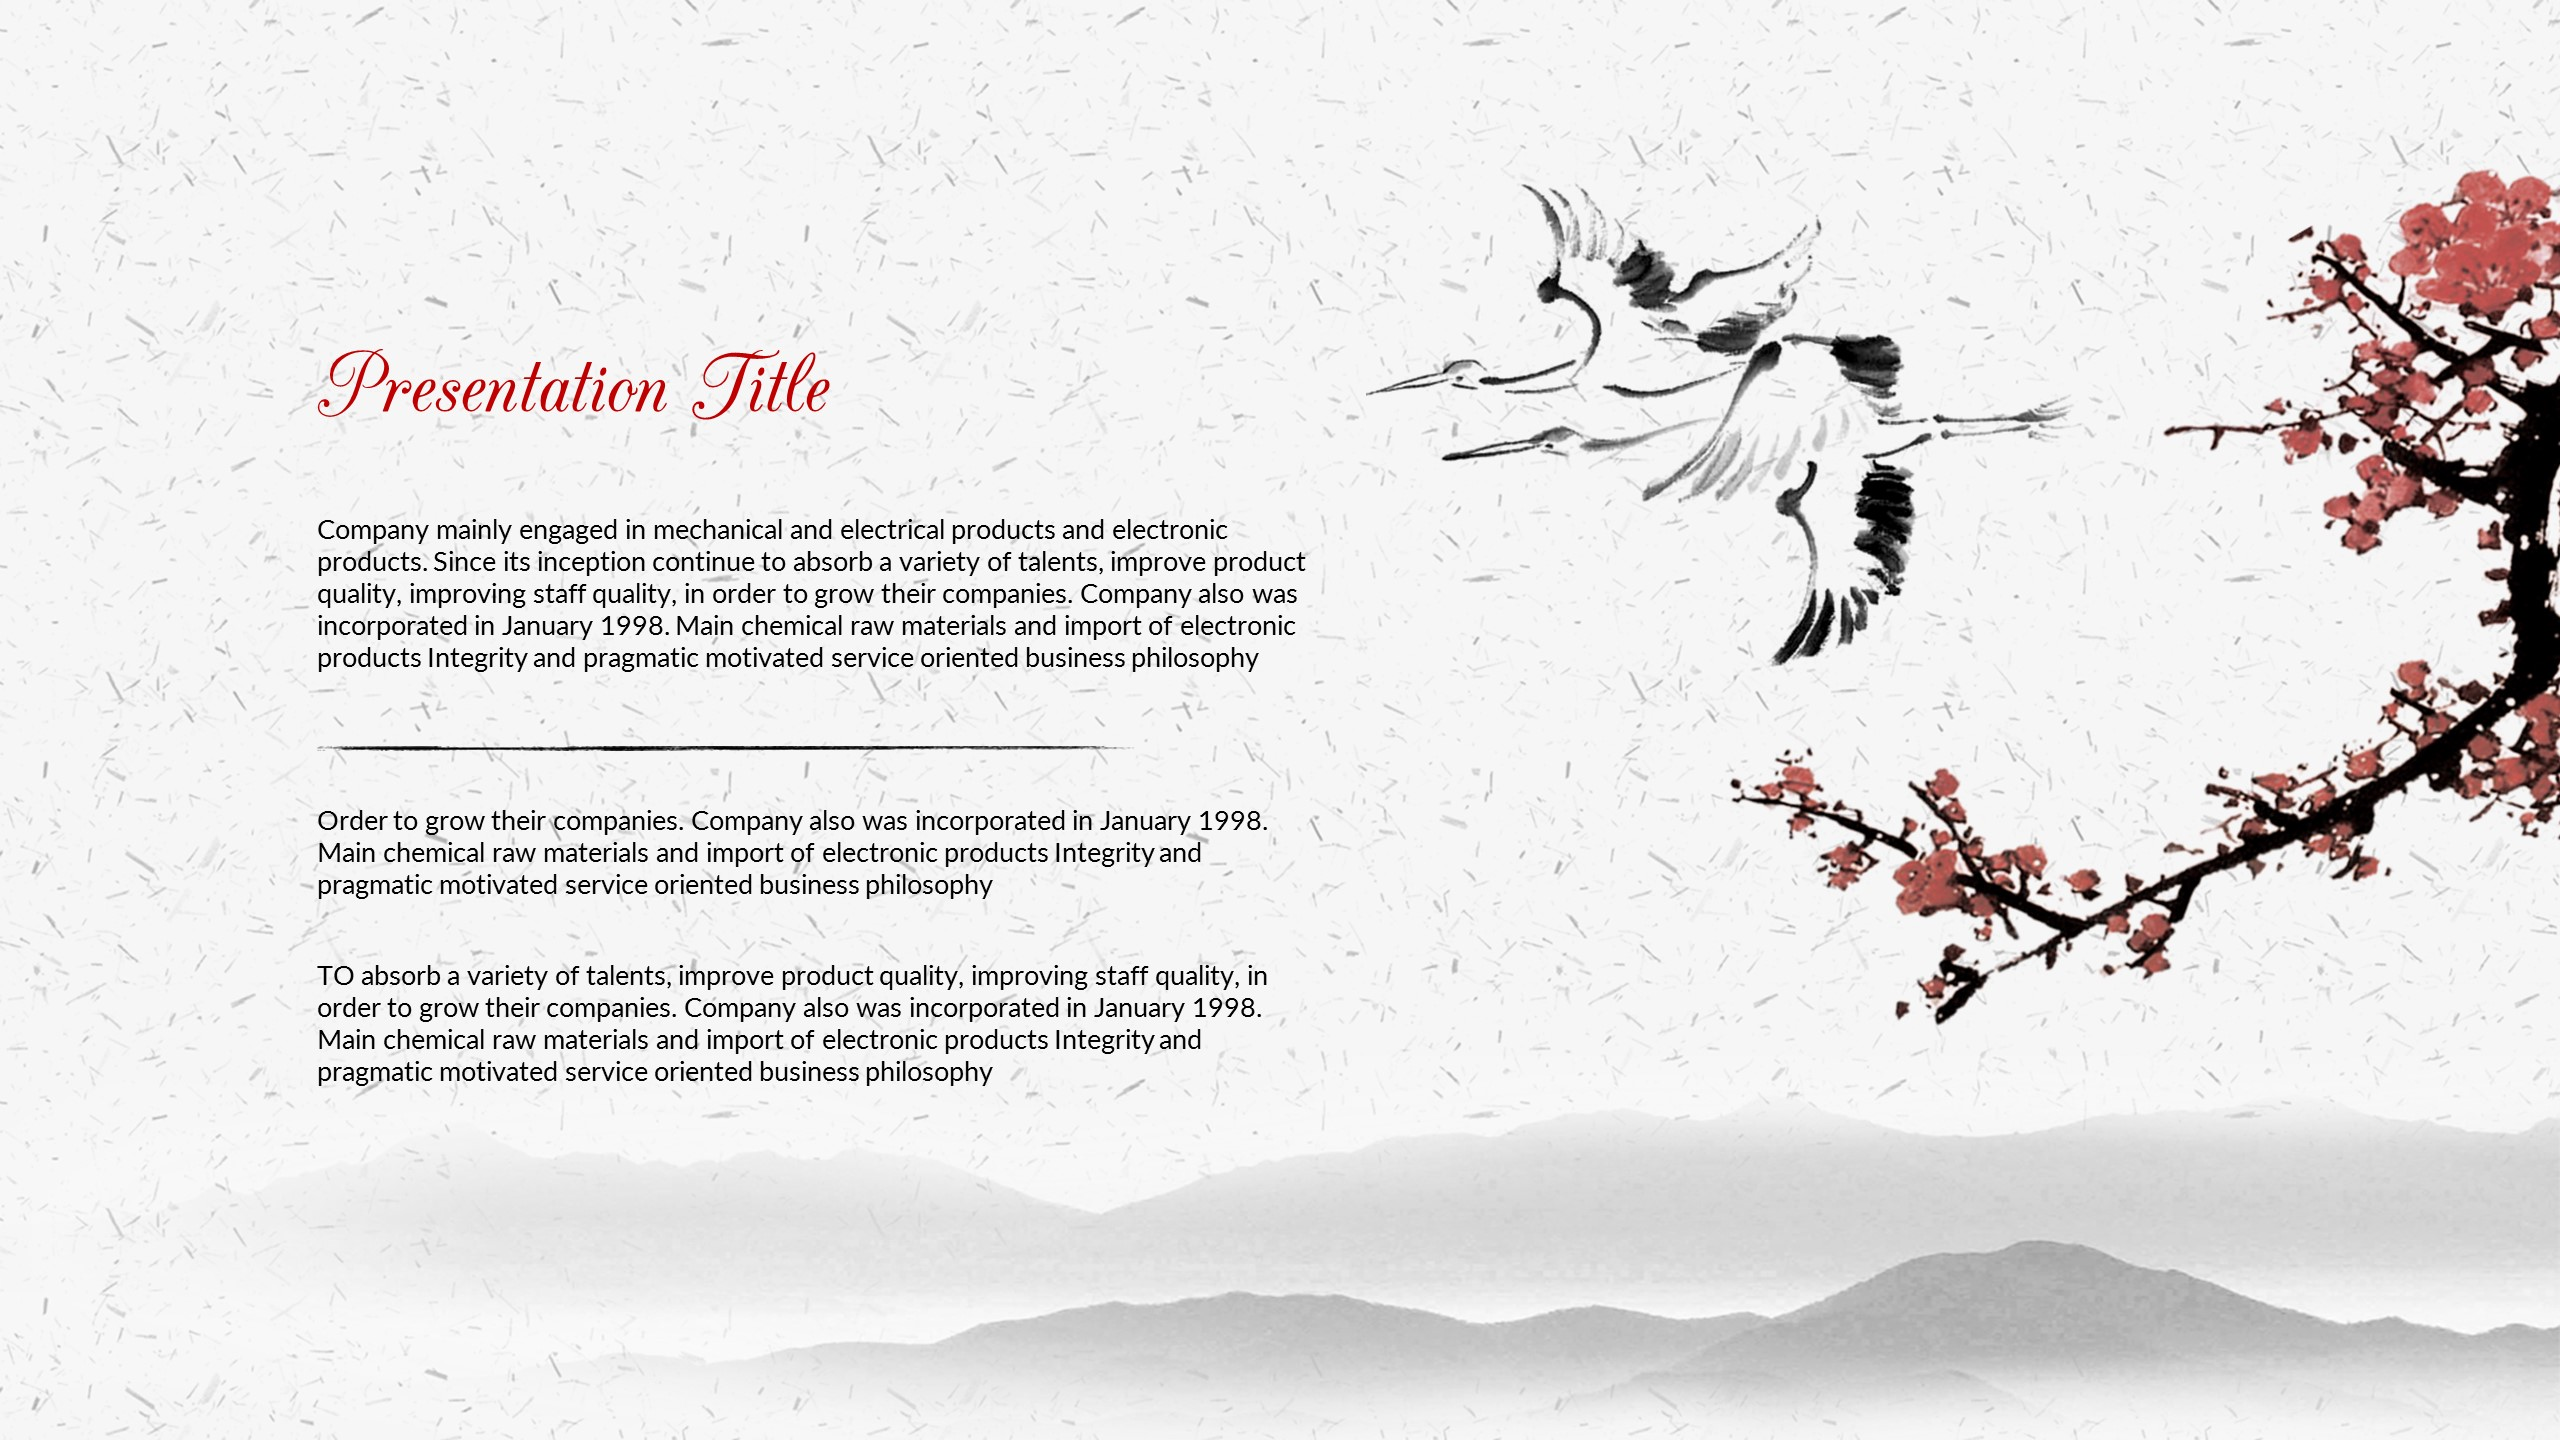 Chinese style powerpoint presentation by 5yue graphicriver chinese style powerpoint presentation creative powerpoint templates 002chinese stylep002 1 toneelgroepblik Images